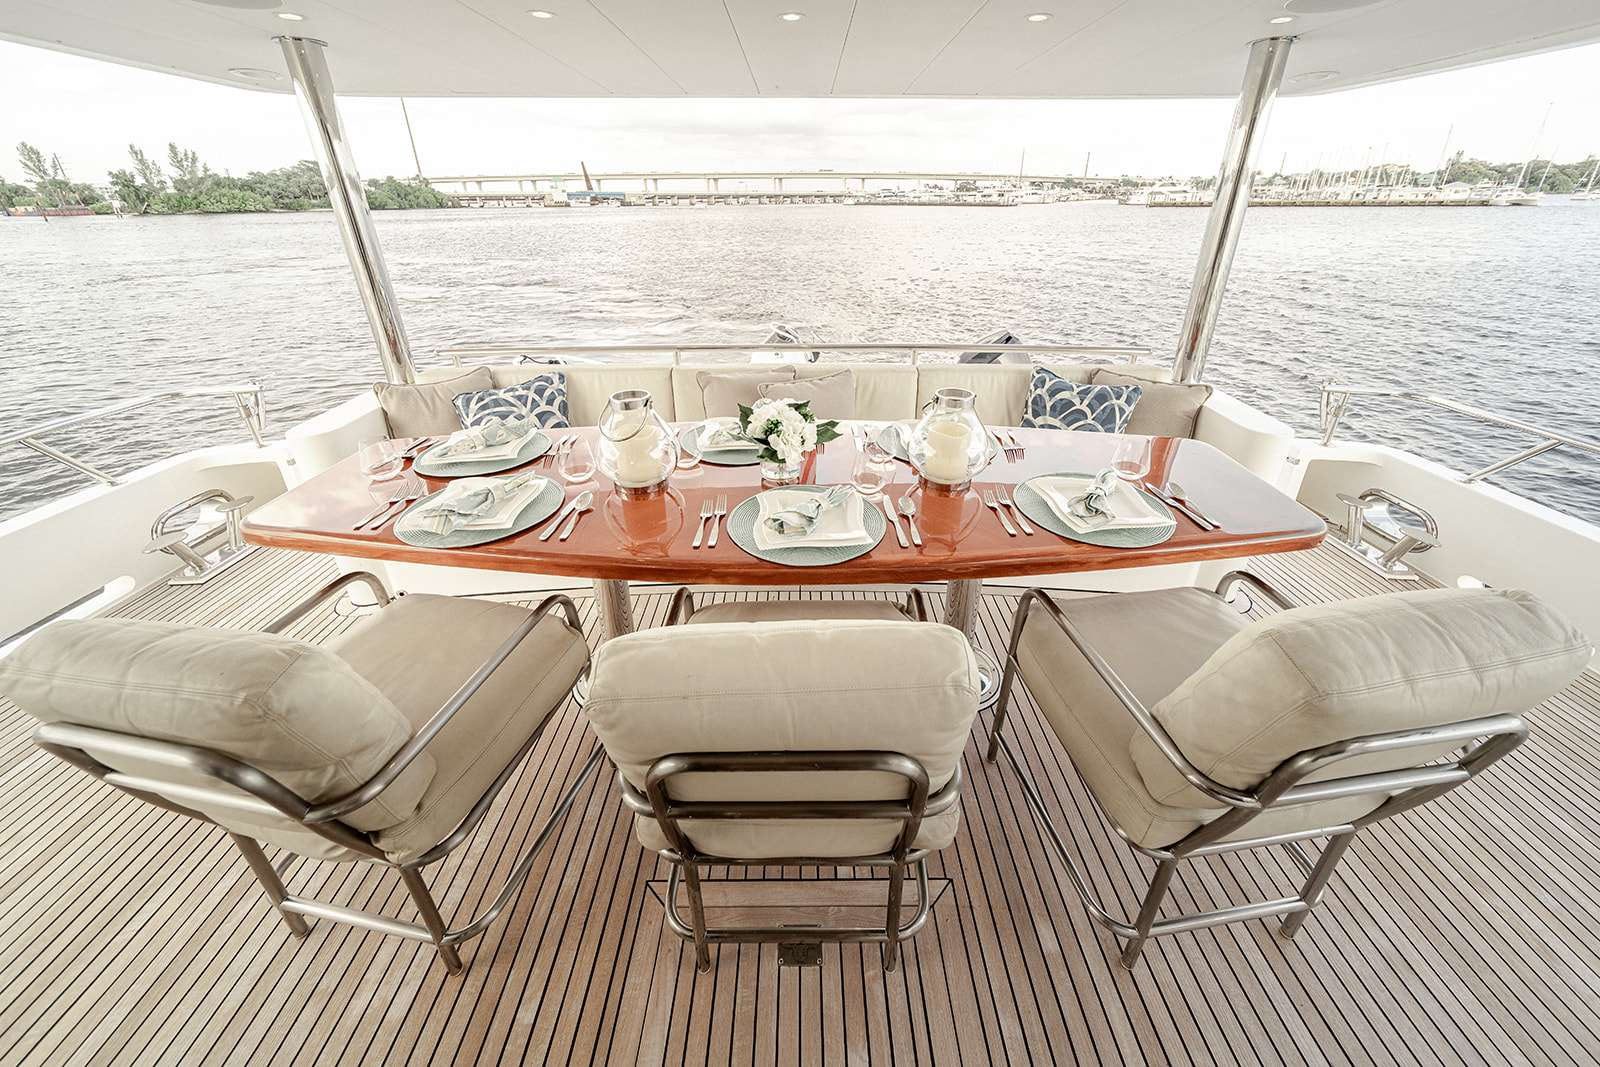 Aft Deck Dining for 6-8 Guests